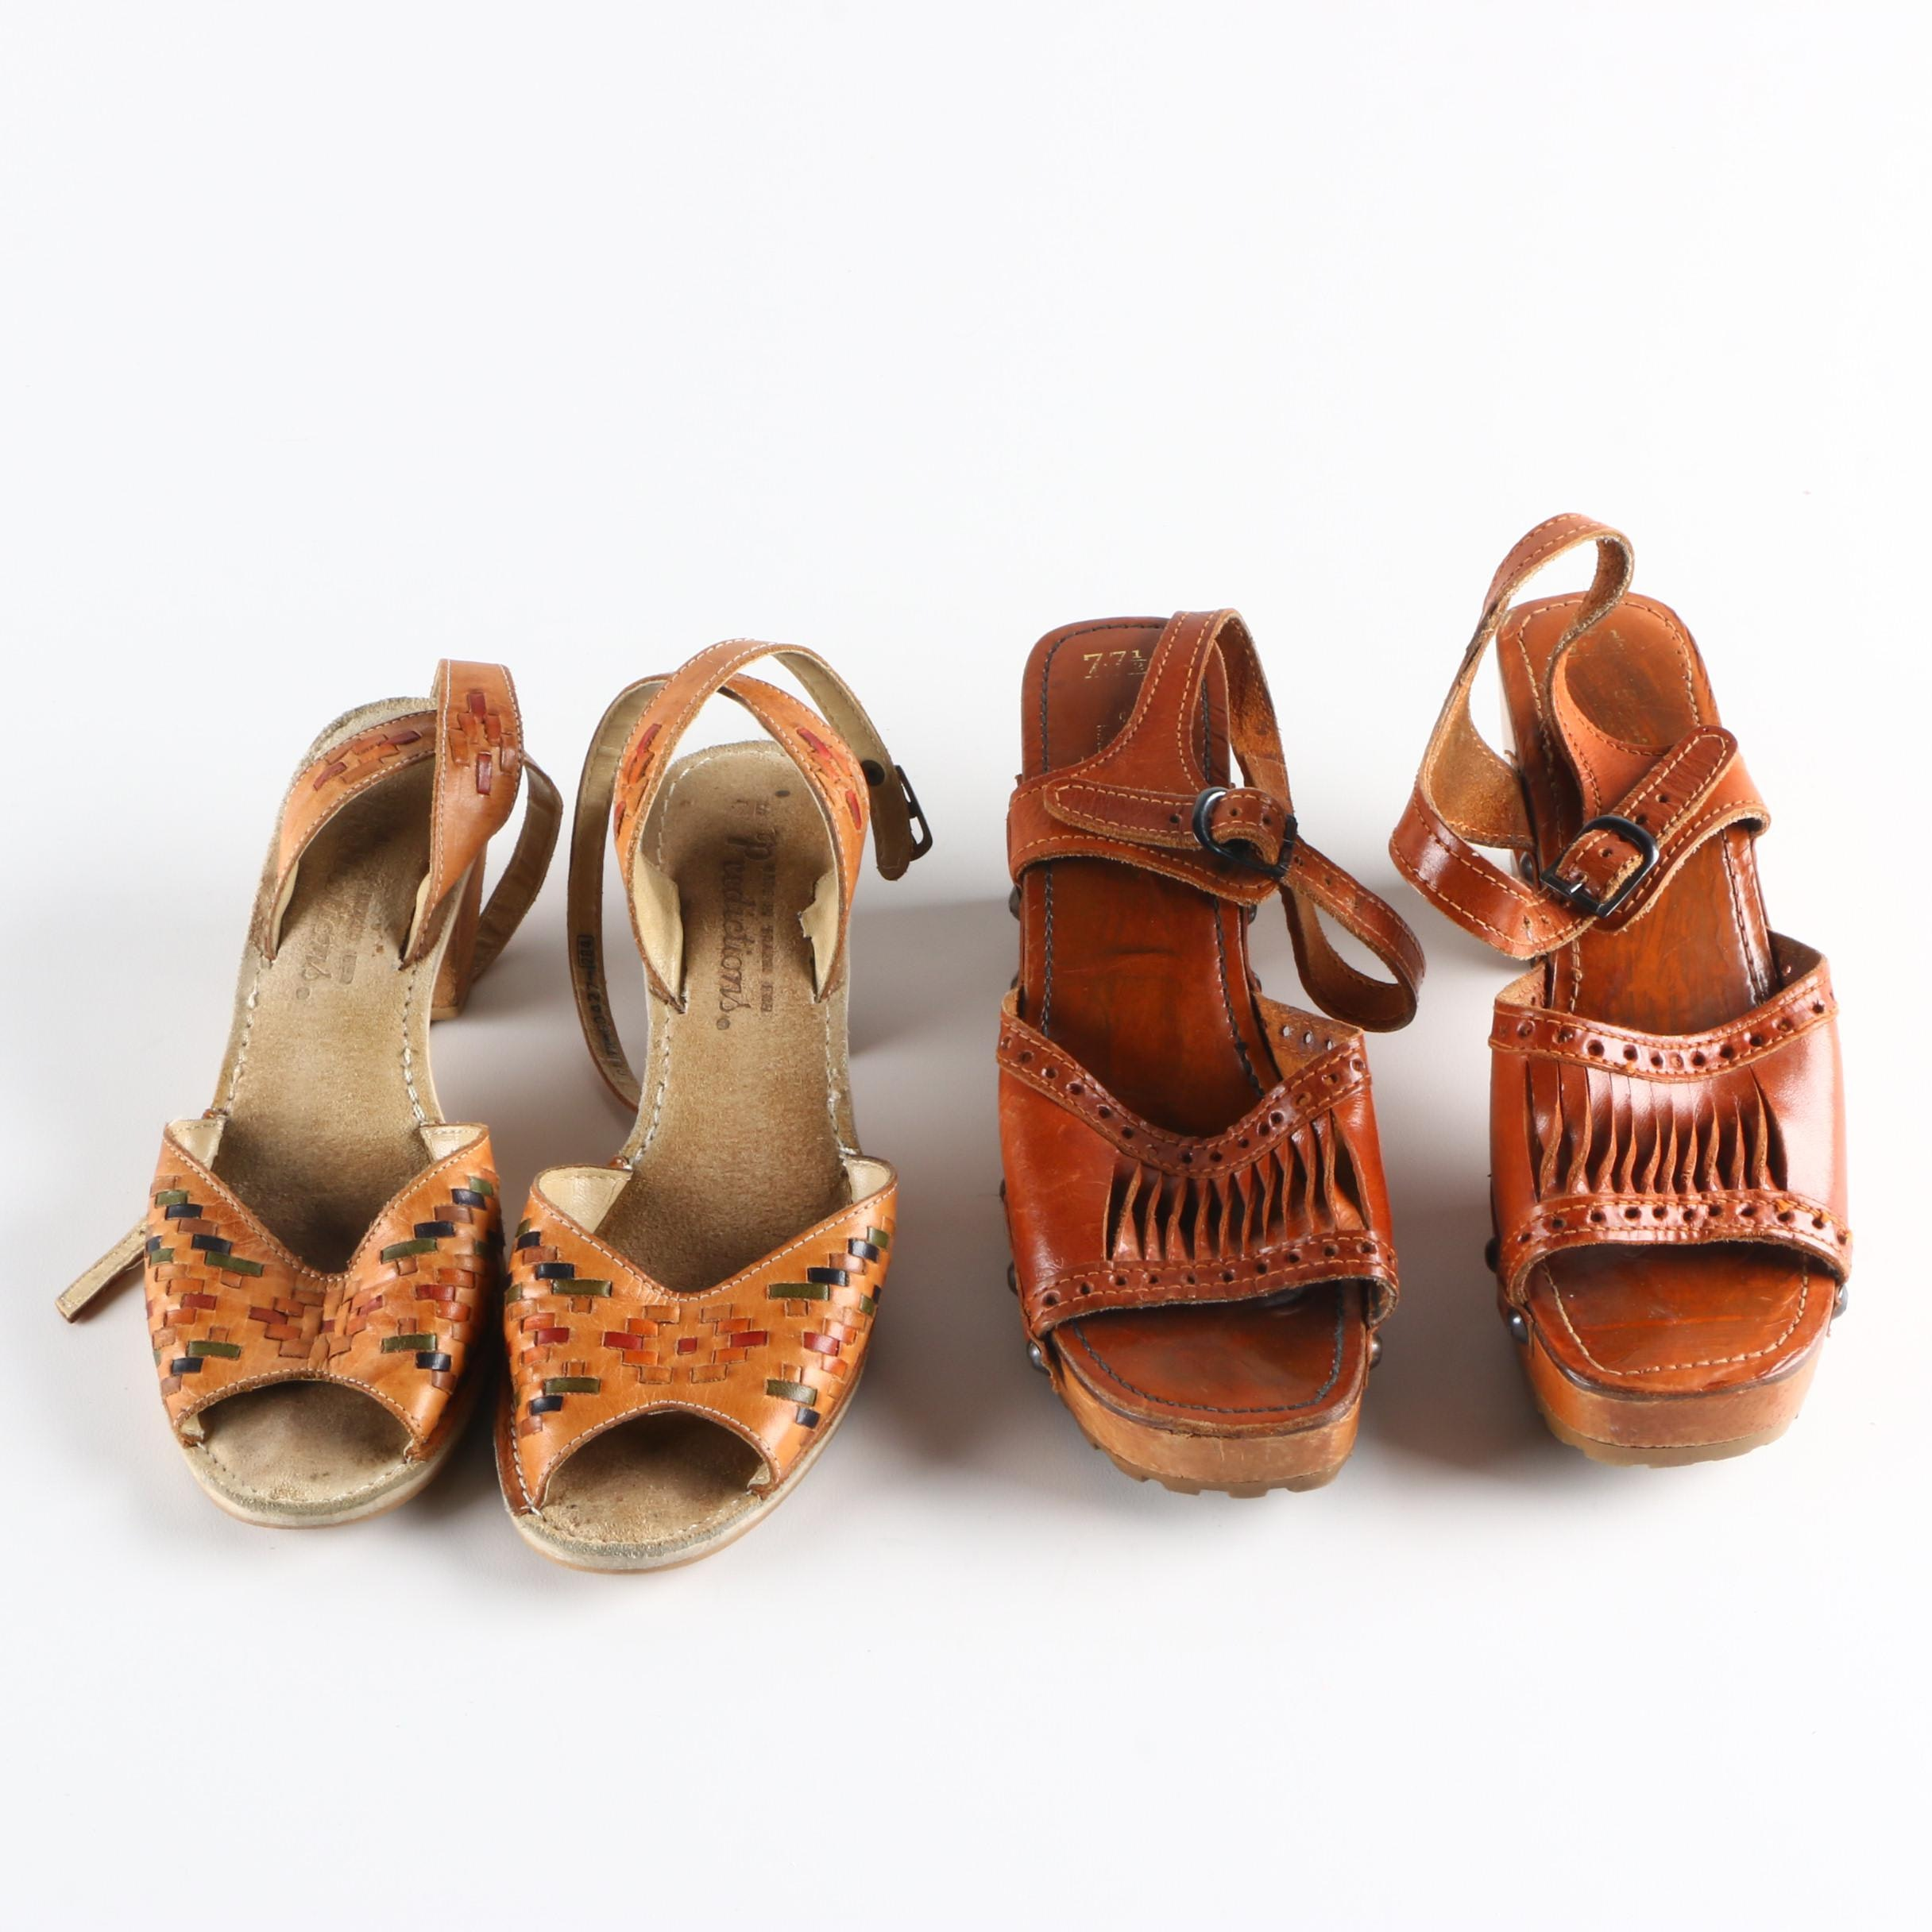 Vintage Leather Sandals Including Predictions